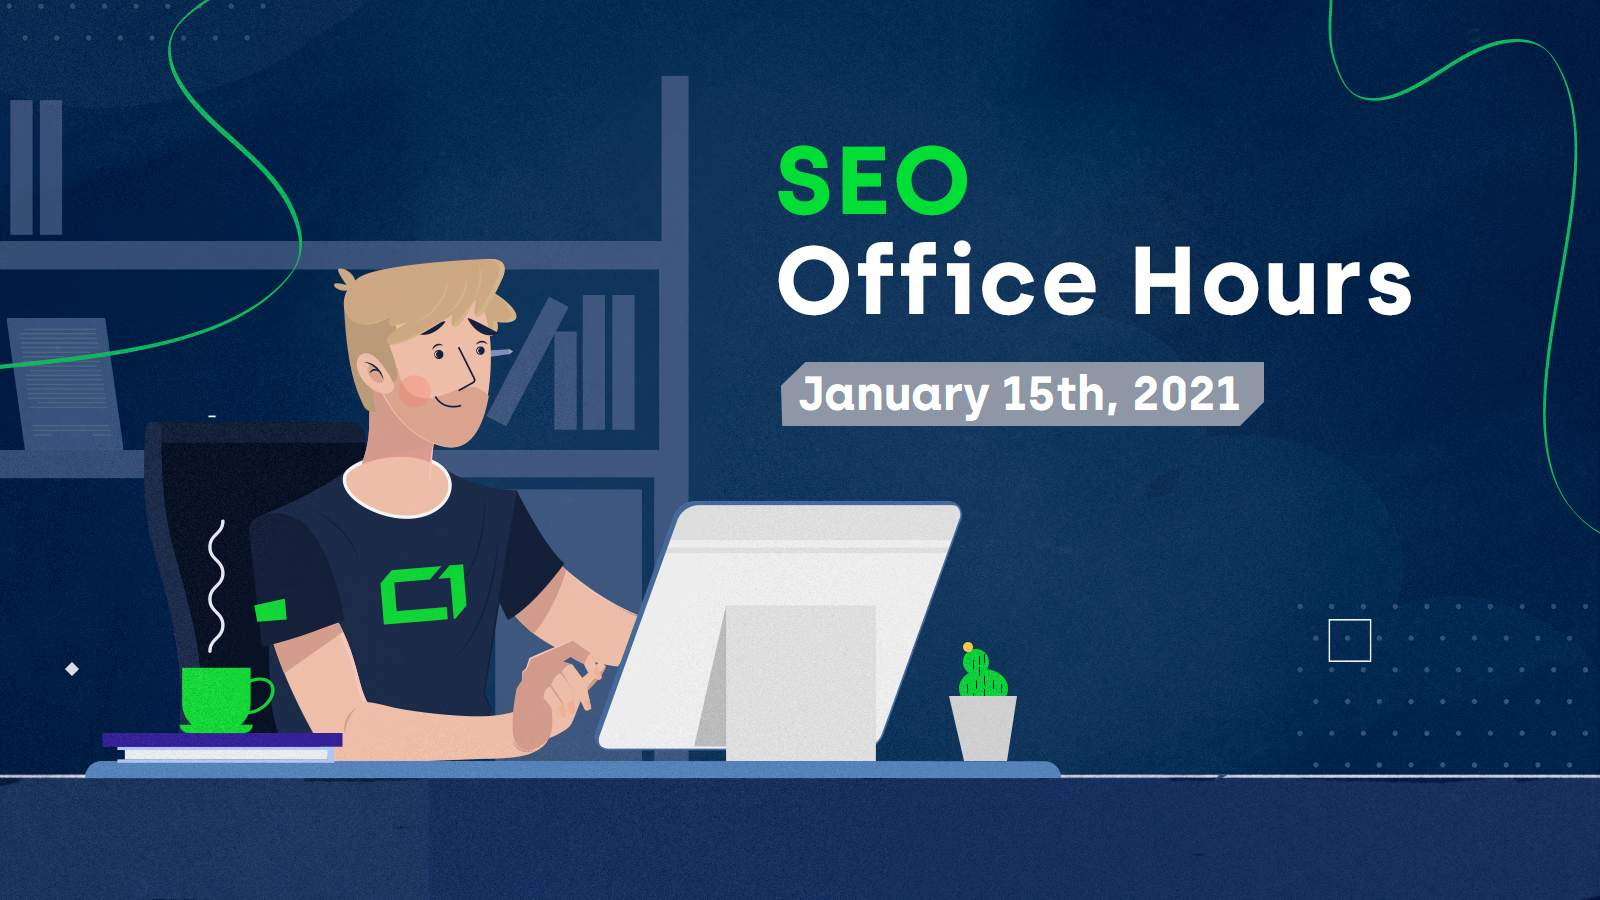 SEO Office Hours, January 15th 2021 - Hero Image